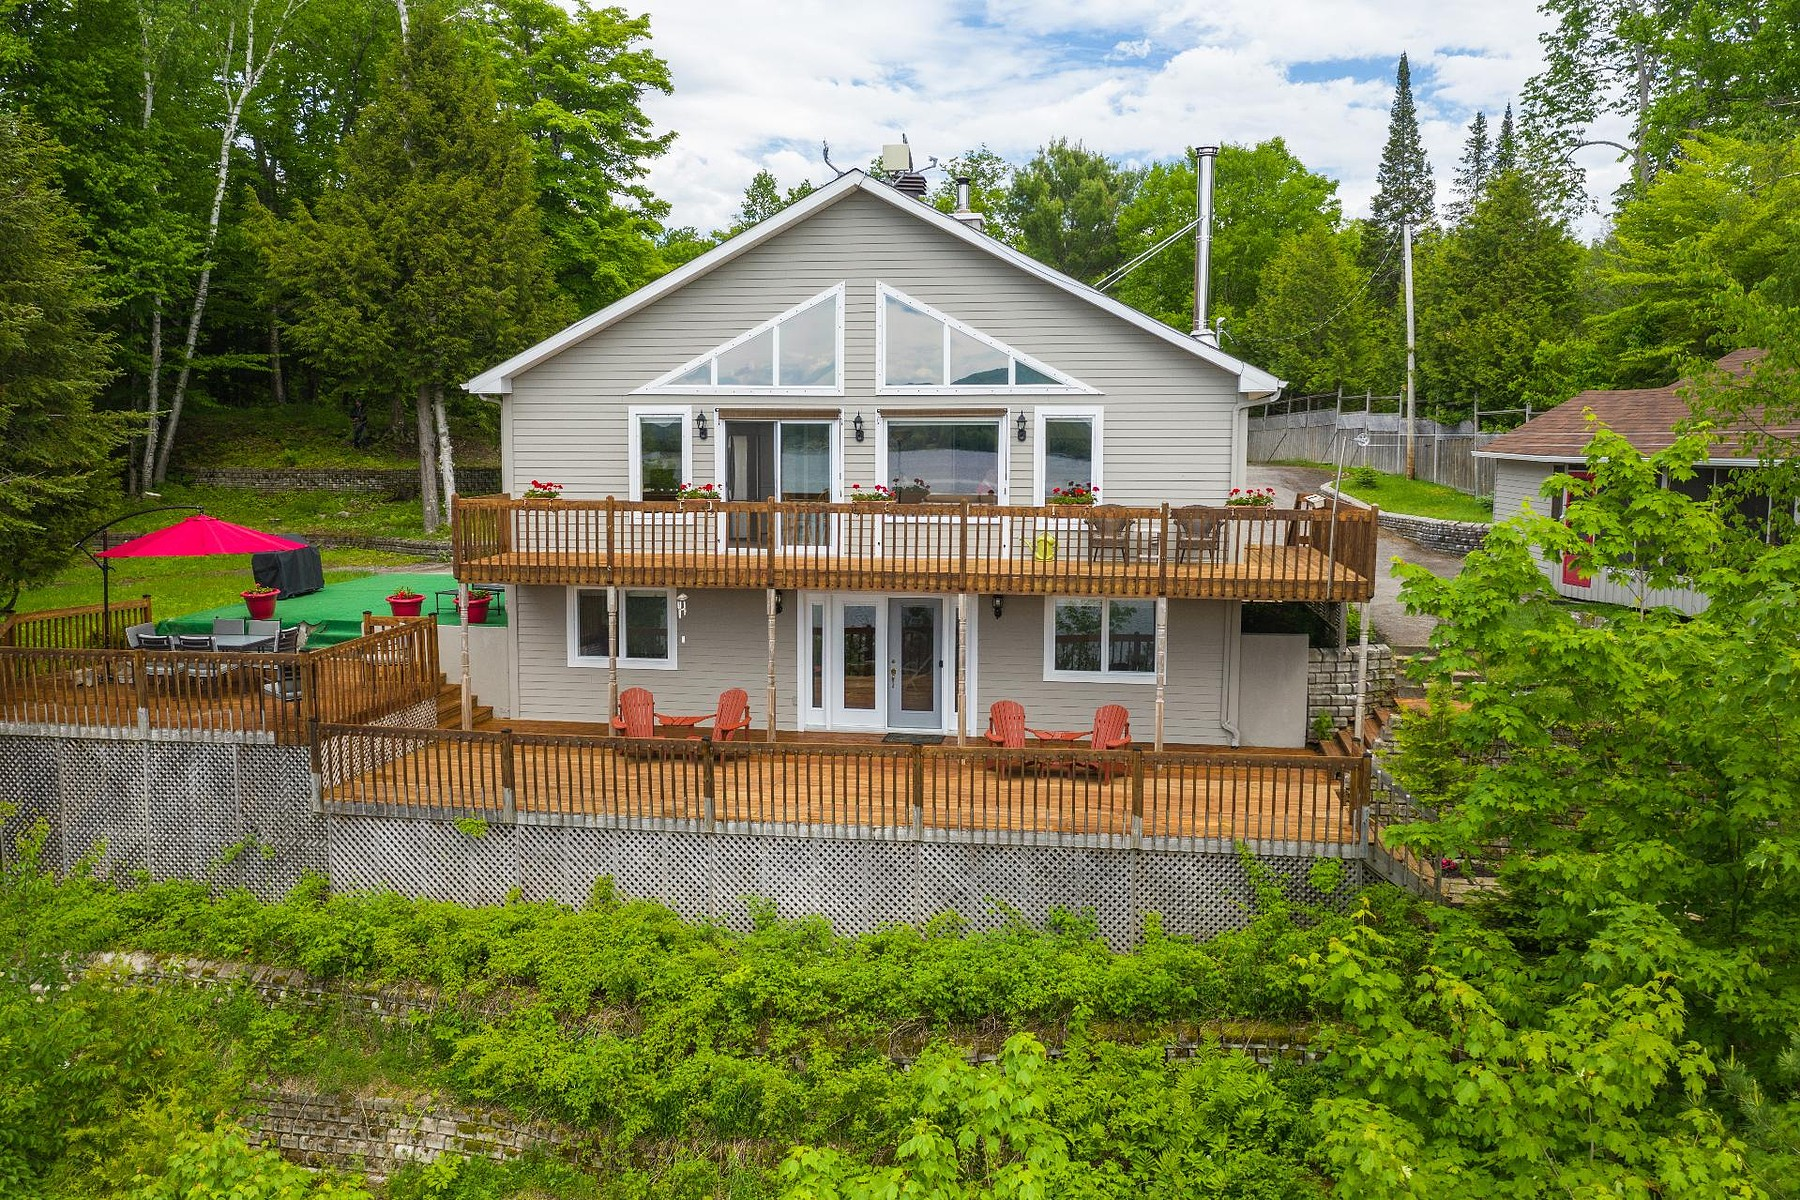 Single Family Homes for Sale at Amherst, Laurentides 997 Ch. du Lac-Cameron Amherst, Quebec J0T2T0 Canada